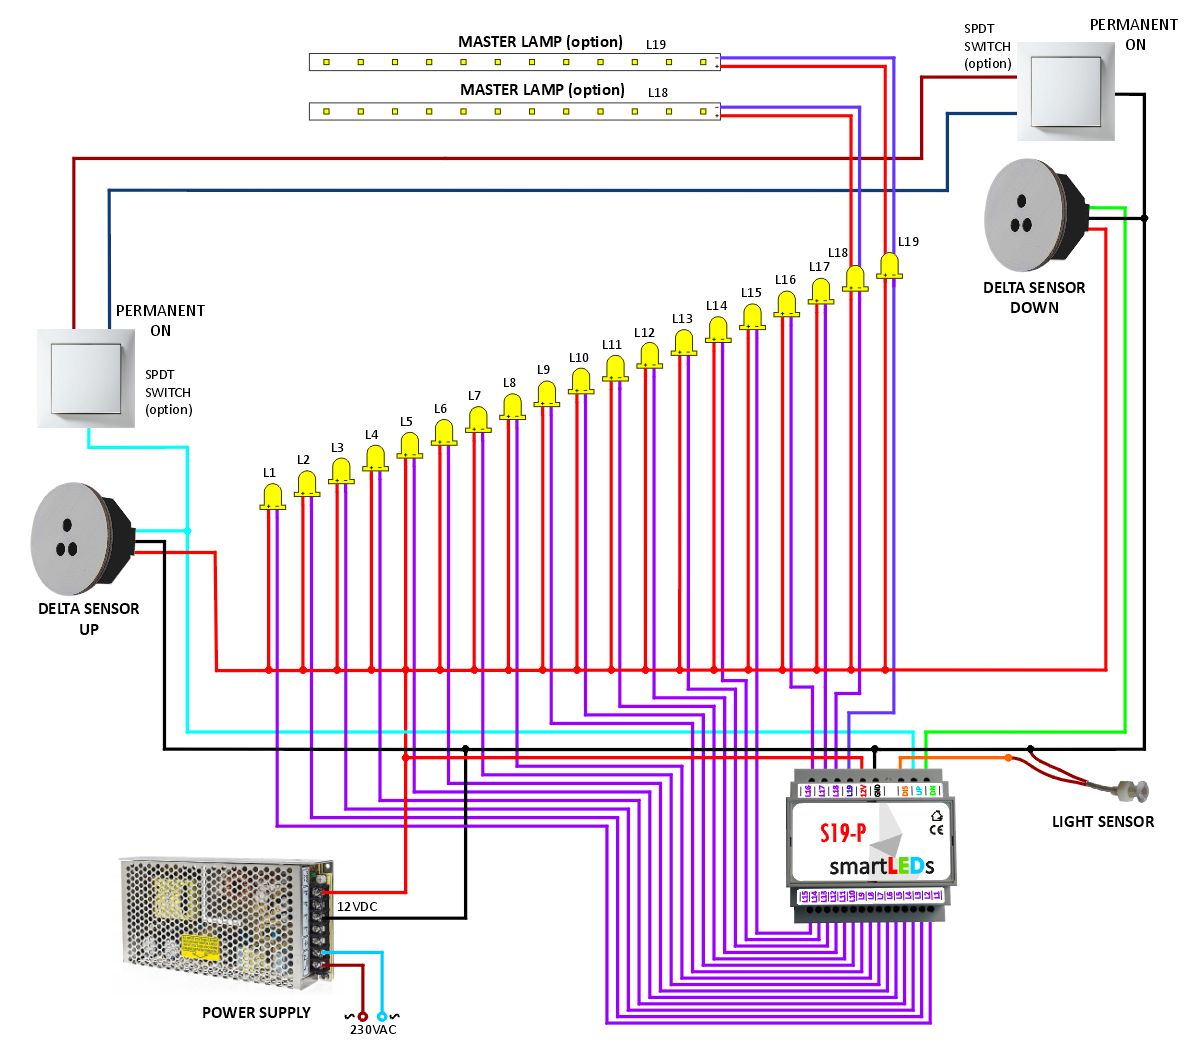 Installation diagram of the Sequential LED stair lighting system with S19 Premium controller and DELTA motion sensors